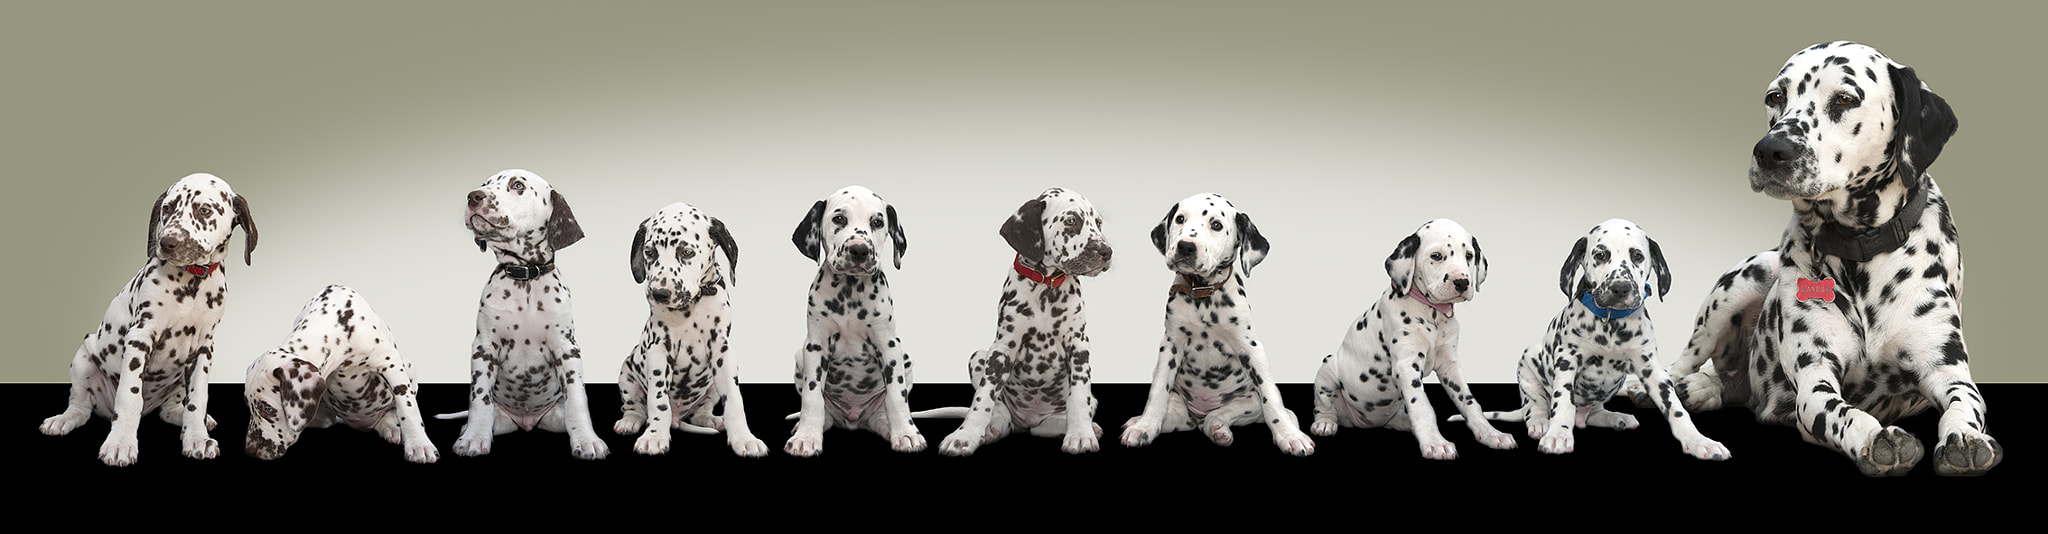 Photograph Dalmations by Neil Harsant on 500px